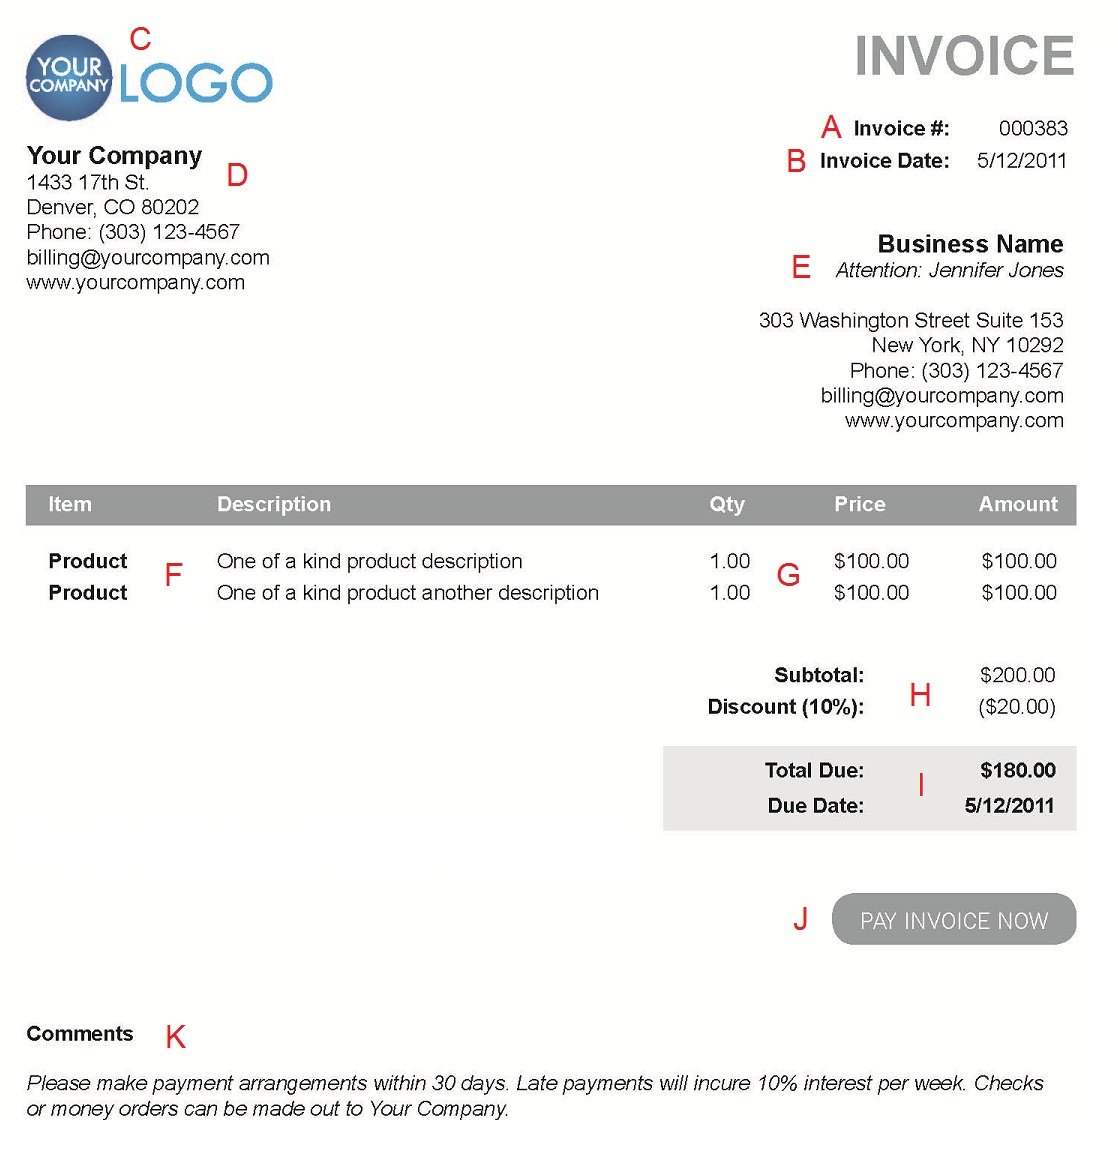 Coolmathgamesus  Unique The  Different Sections Of An Electronic Payment Invoice With Likable A  With Agreeable Trust Receipt Form Also Can I Get A Refund Without A Receipt In Addition Rent Receipt Formats And Sample Of A Receipt Of Payment As Well As Lic Online Premium Paid Receipt Additionally Sample Of Money Receipt From Paysimplecom With Coolmathgamesus  Likable The  Different Sections Of An Electronic Payment Invoice With Agreeable A  And Unique Trust Receipt Form Also Can I Get A Refund Without A Receipt In Addition Rent Receipt Formats From Paysimplecom